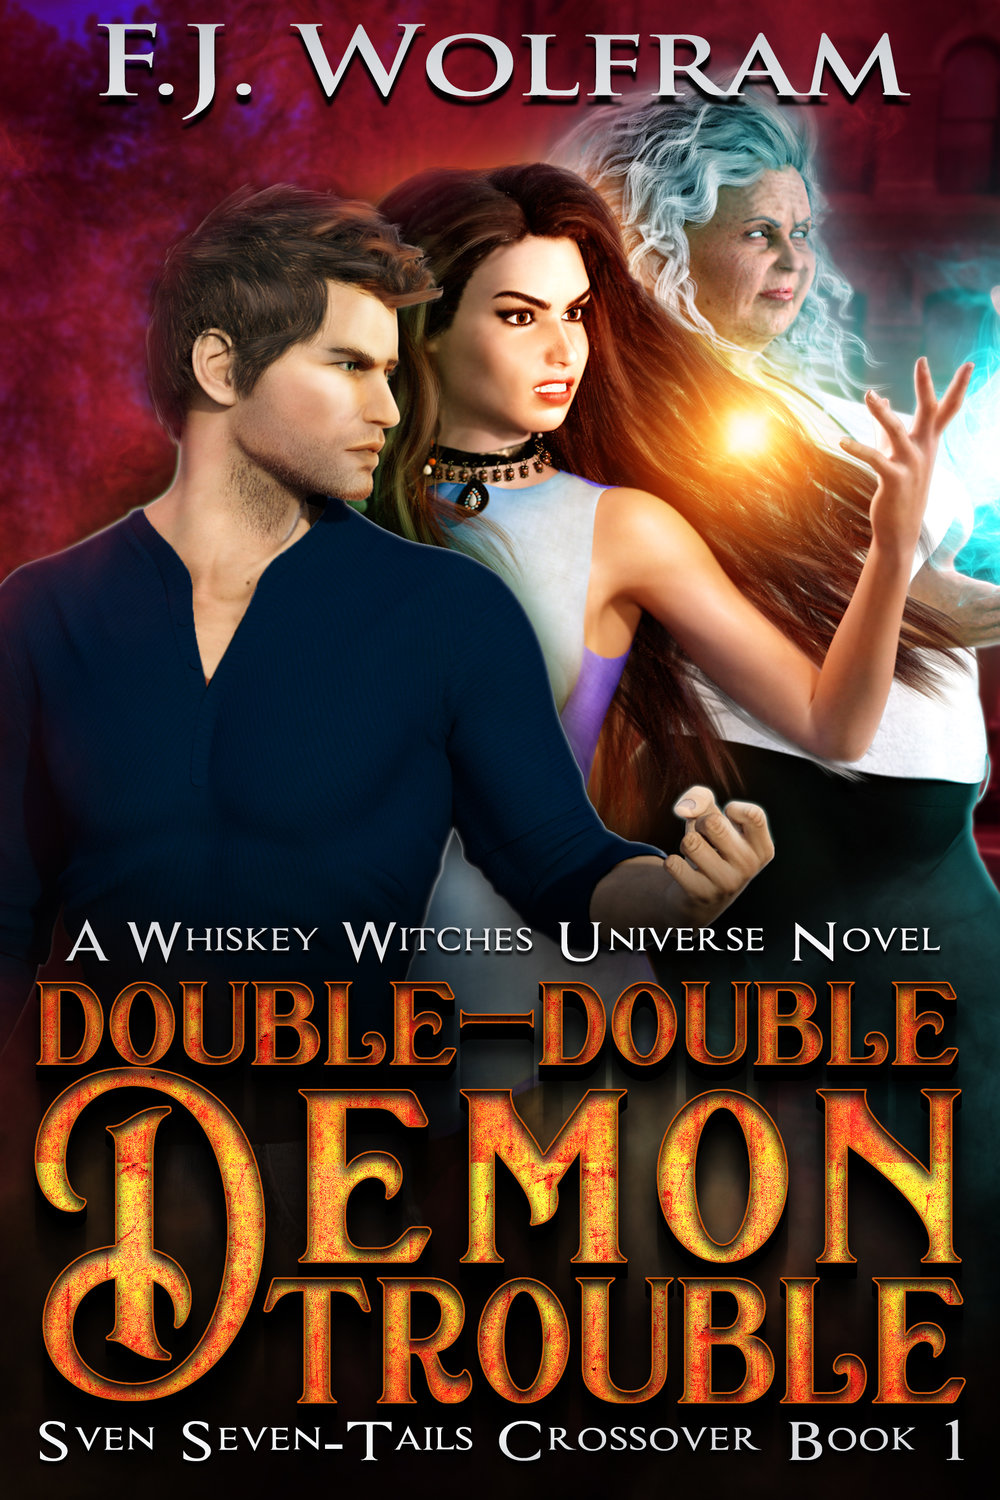 1d Double Double Demon Trouble ebook.jpg